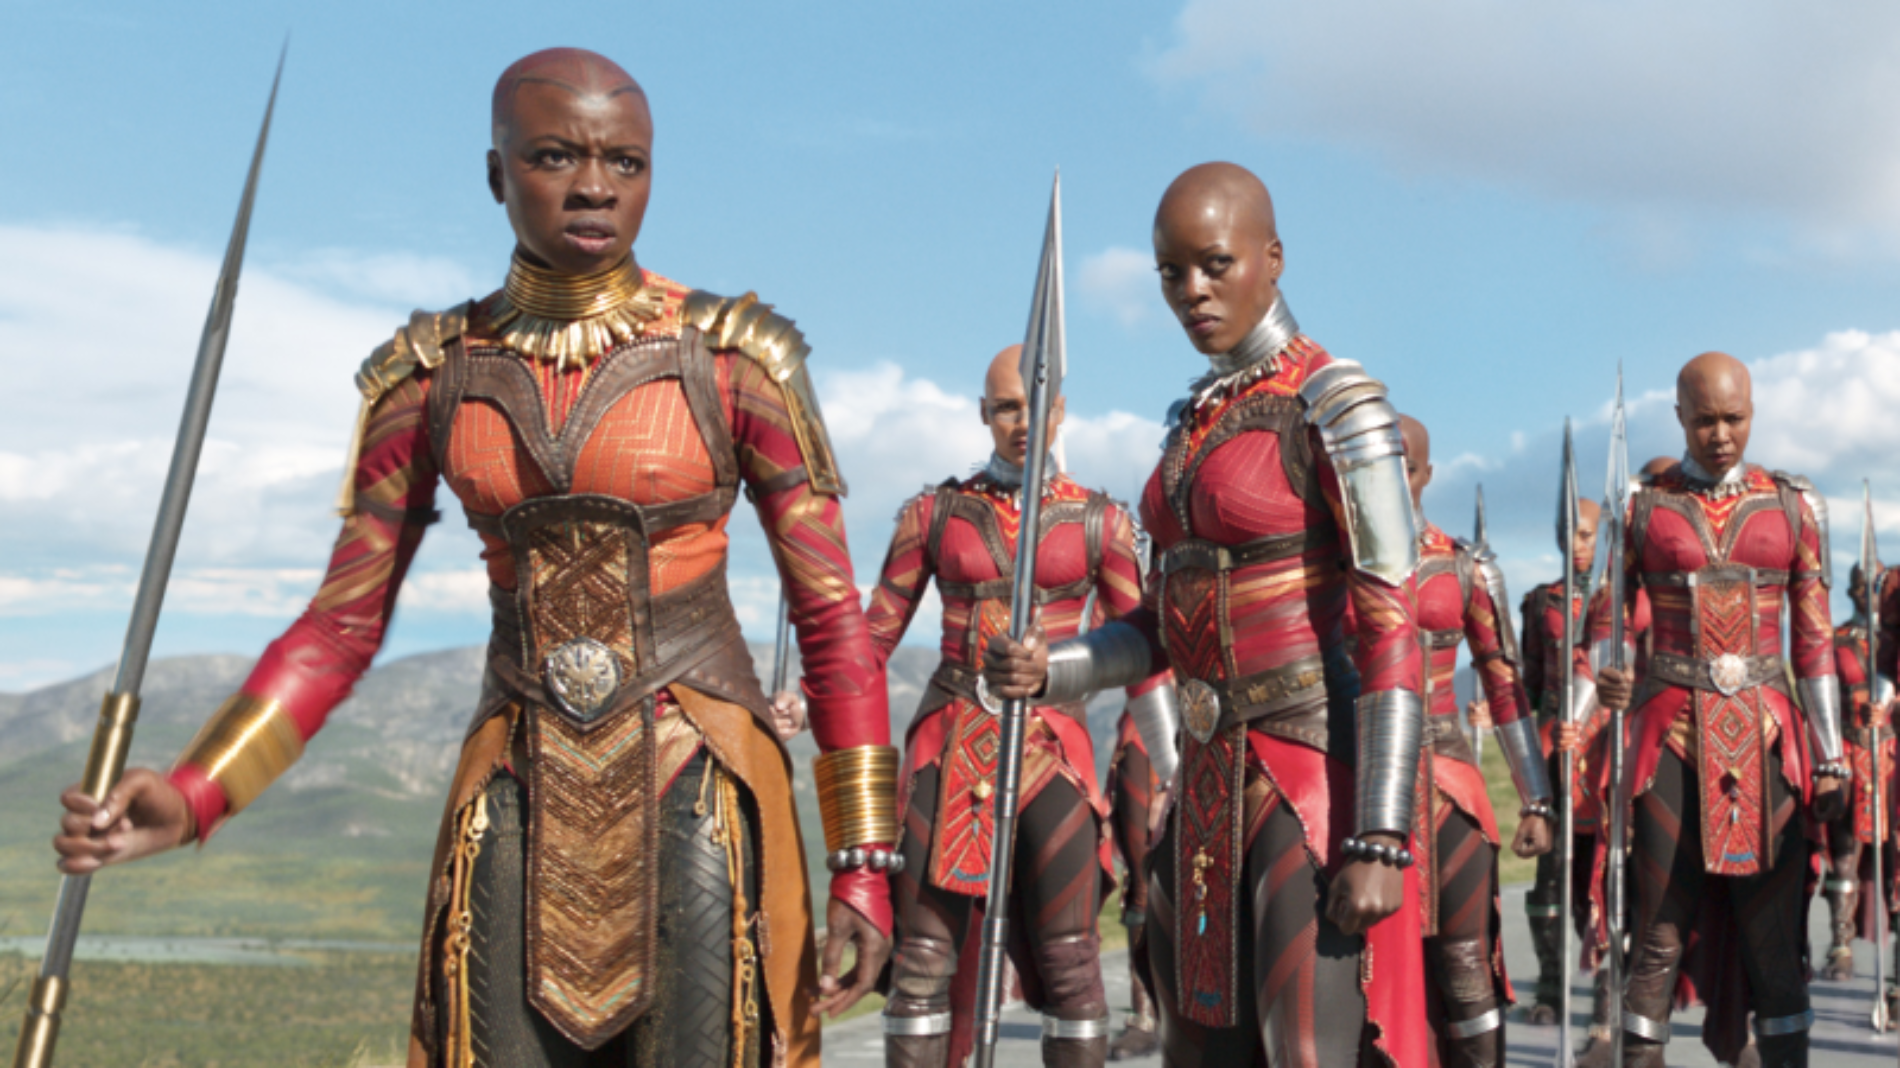 'Black Panther' Screenwriter Talks About The Straight-washing of Lesbian Character